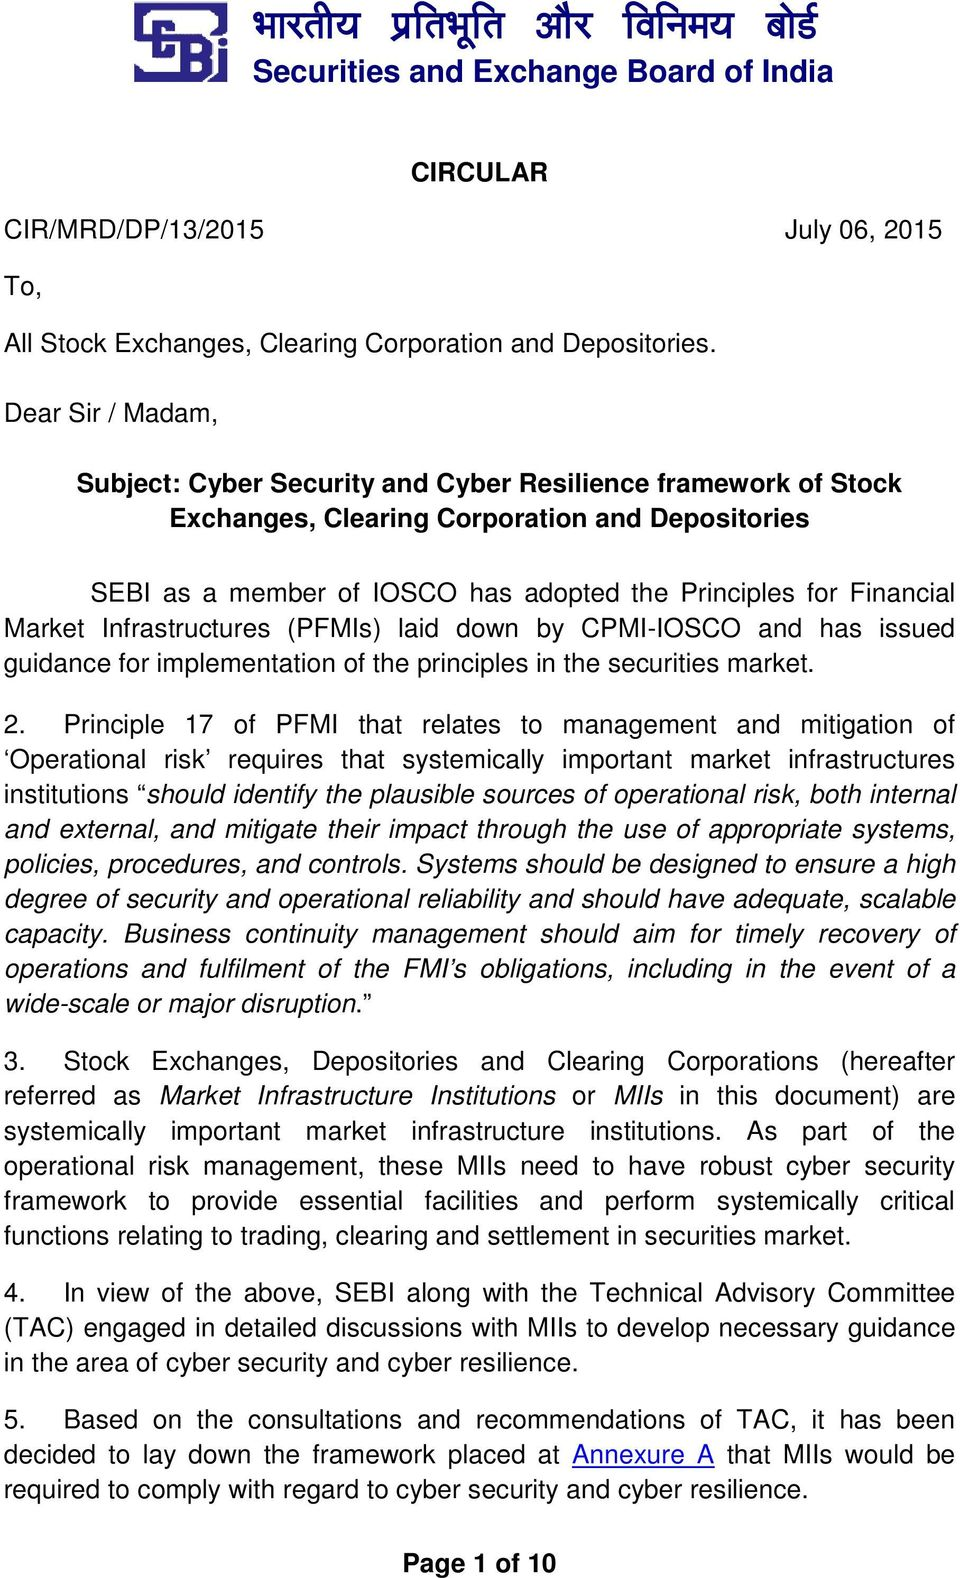 Market Infrastructures (PFMIs) laid down by CPMI-IOSCO and has issued guidance for implementation of the principles in the securities market. 2.